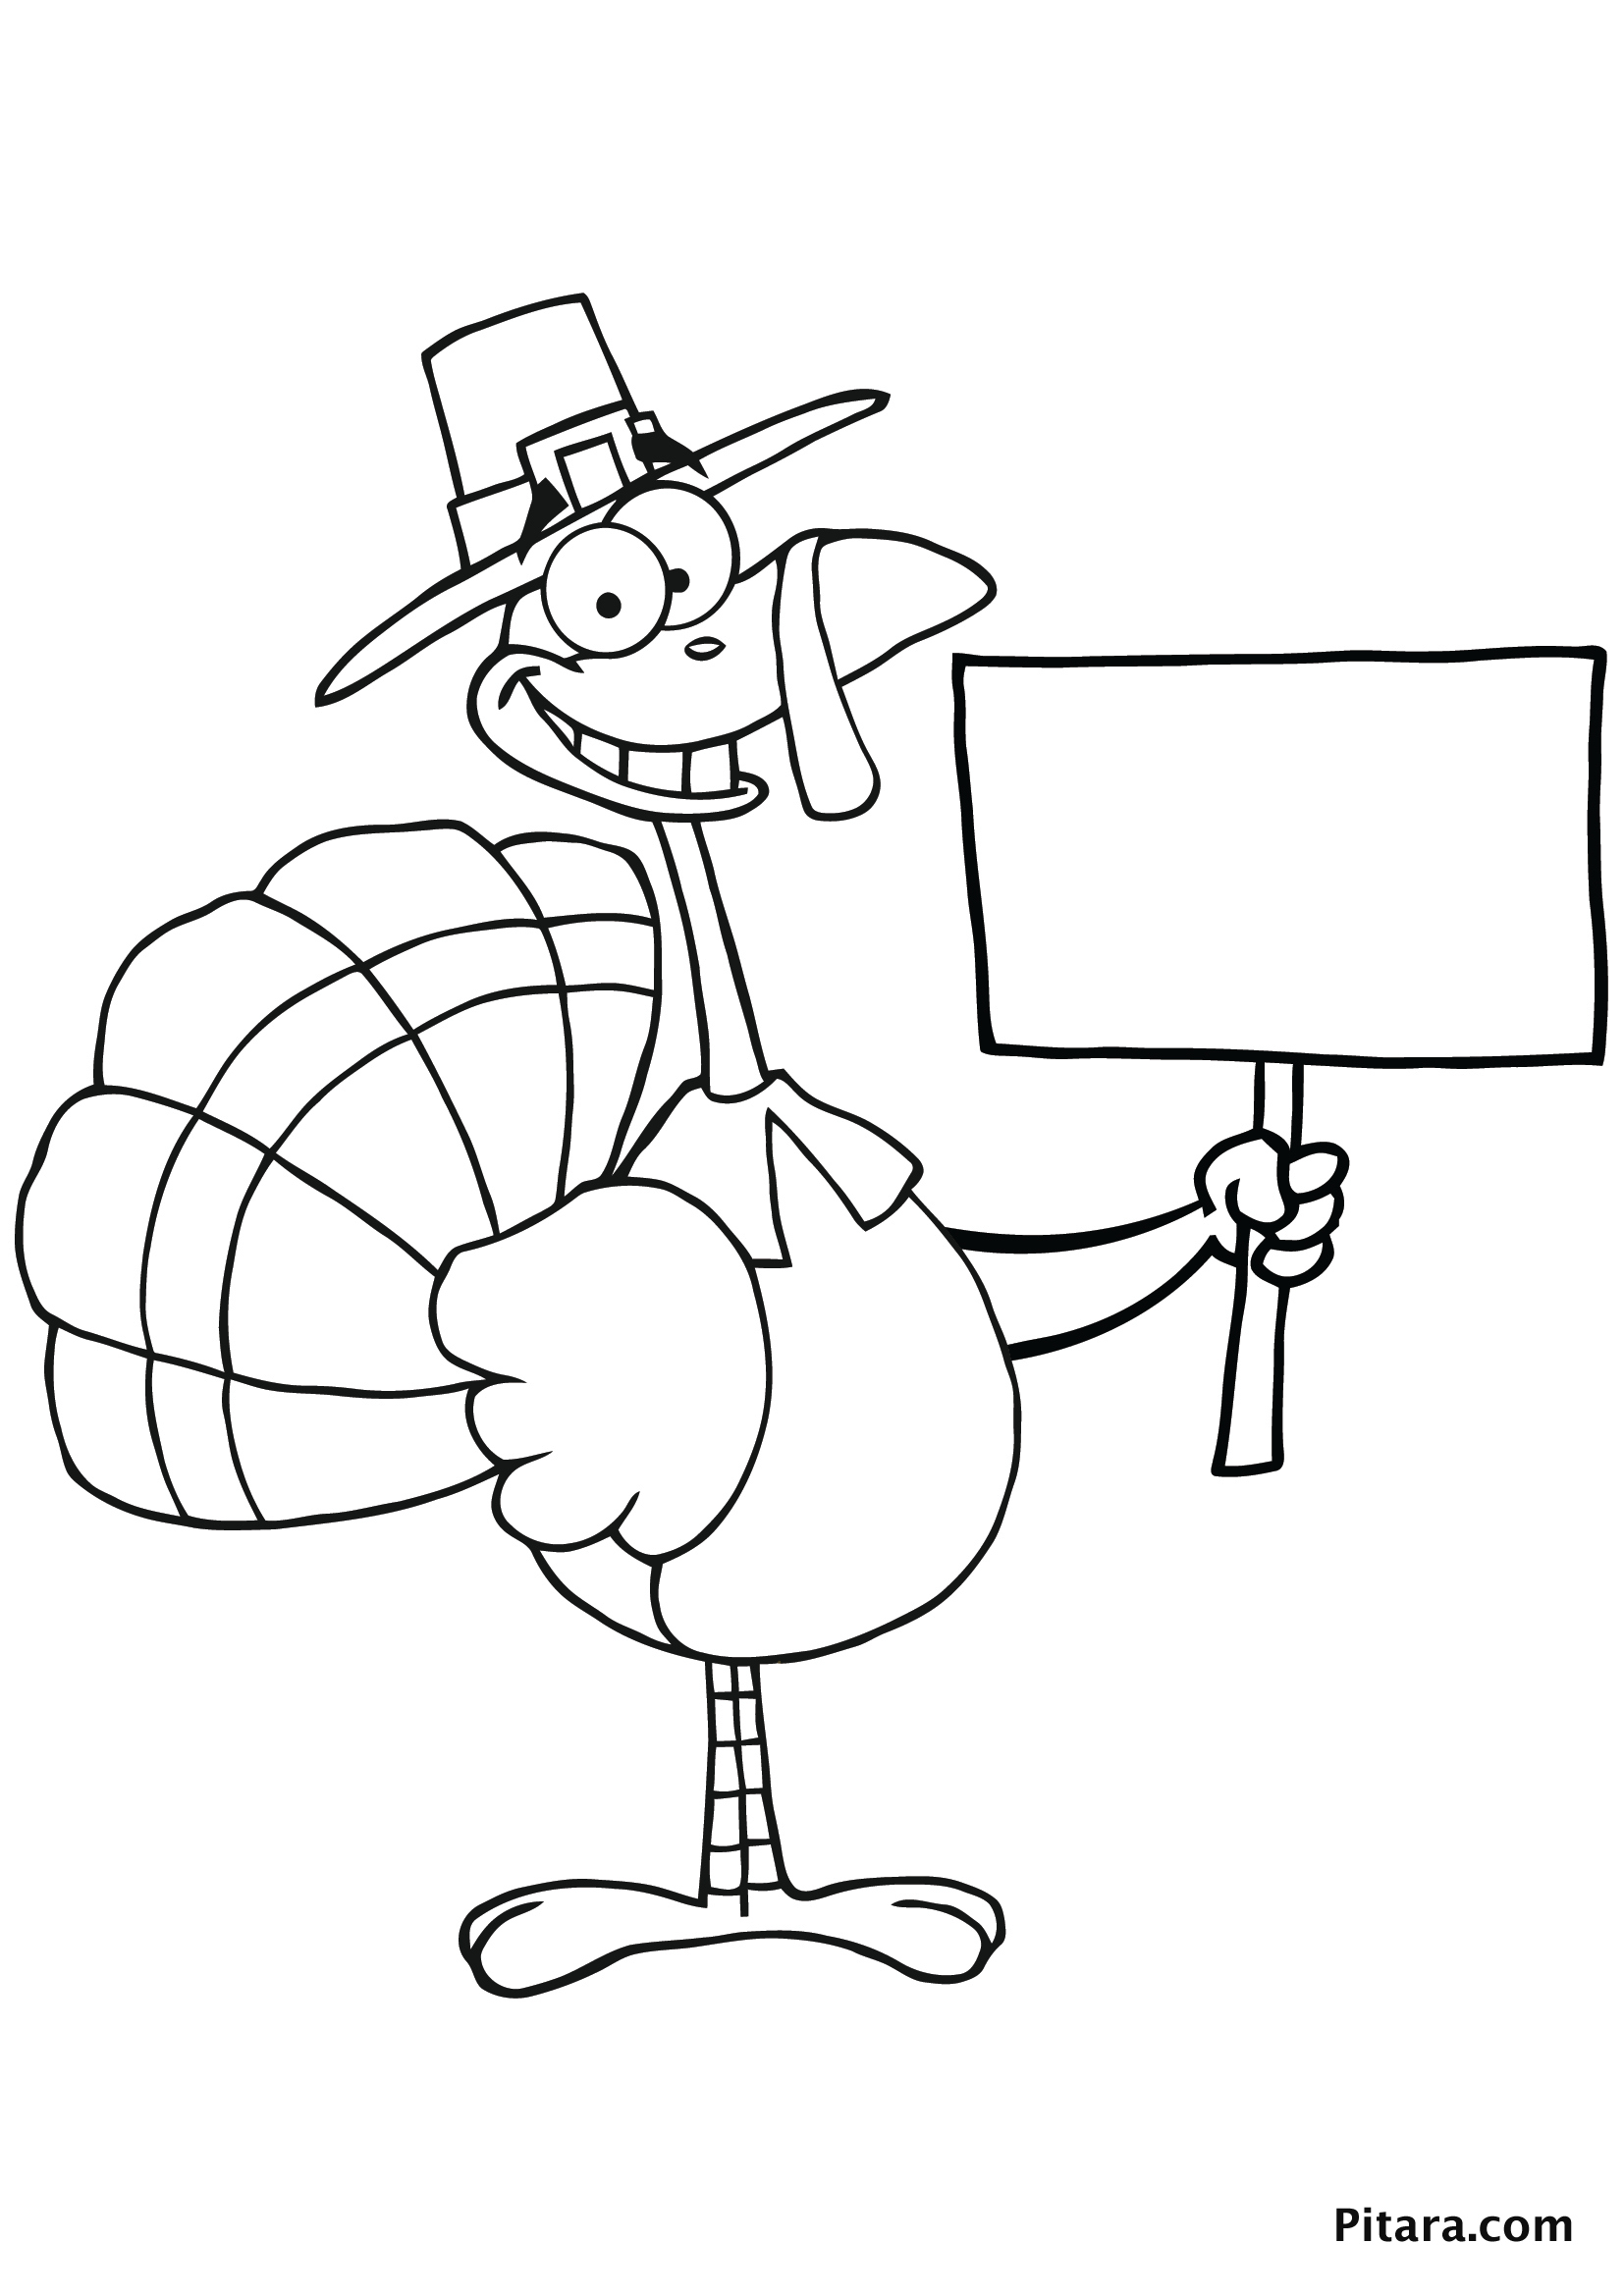 Turkeys Coloring Pages